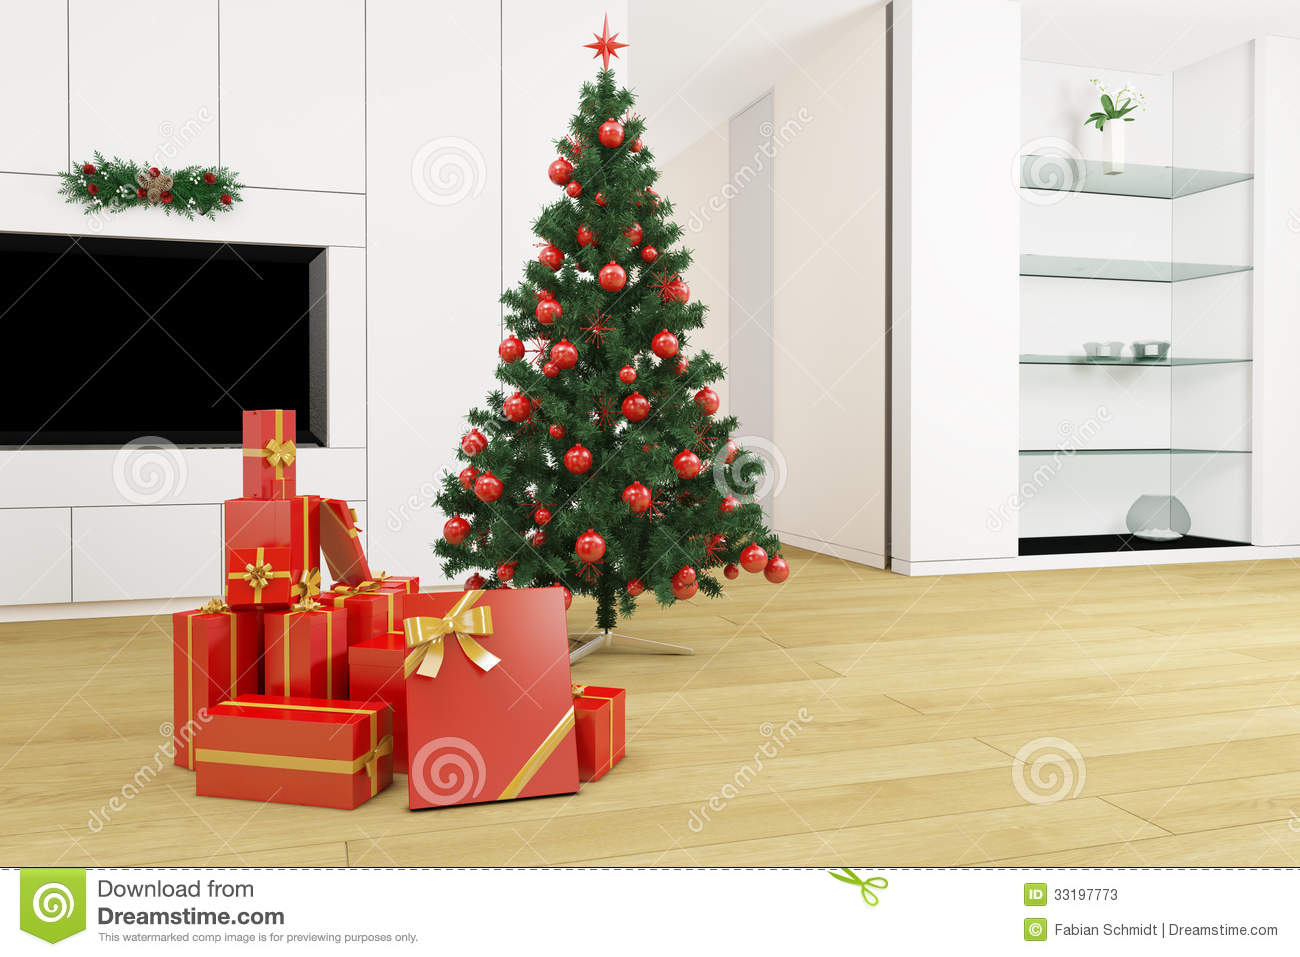 Living Room With Christmas Tree Stock Photos Image 33197773